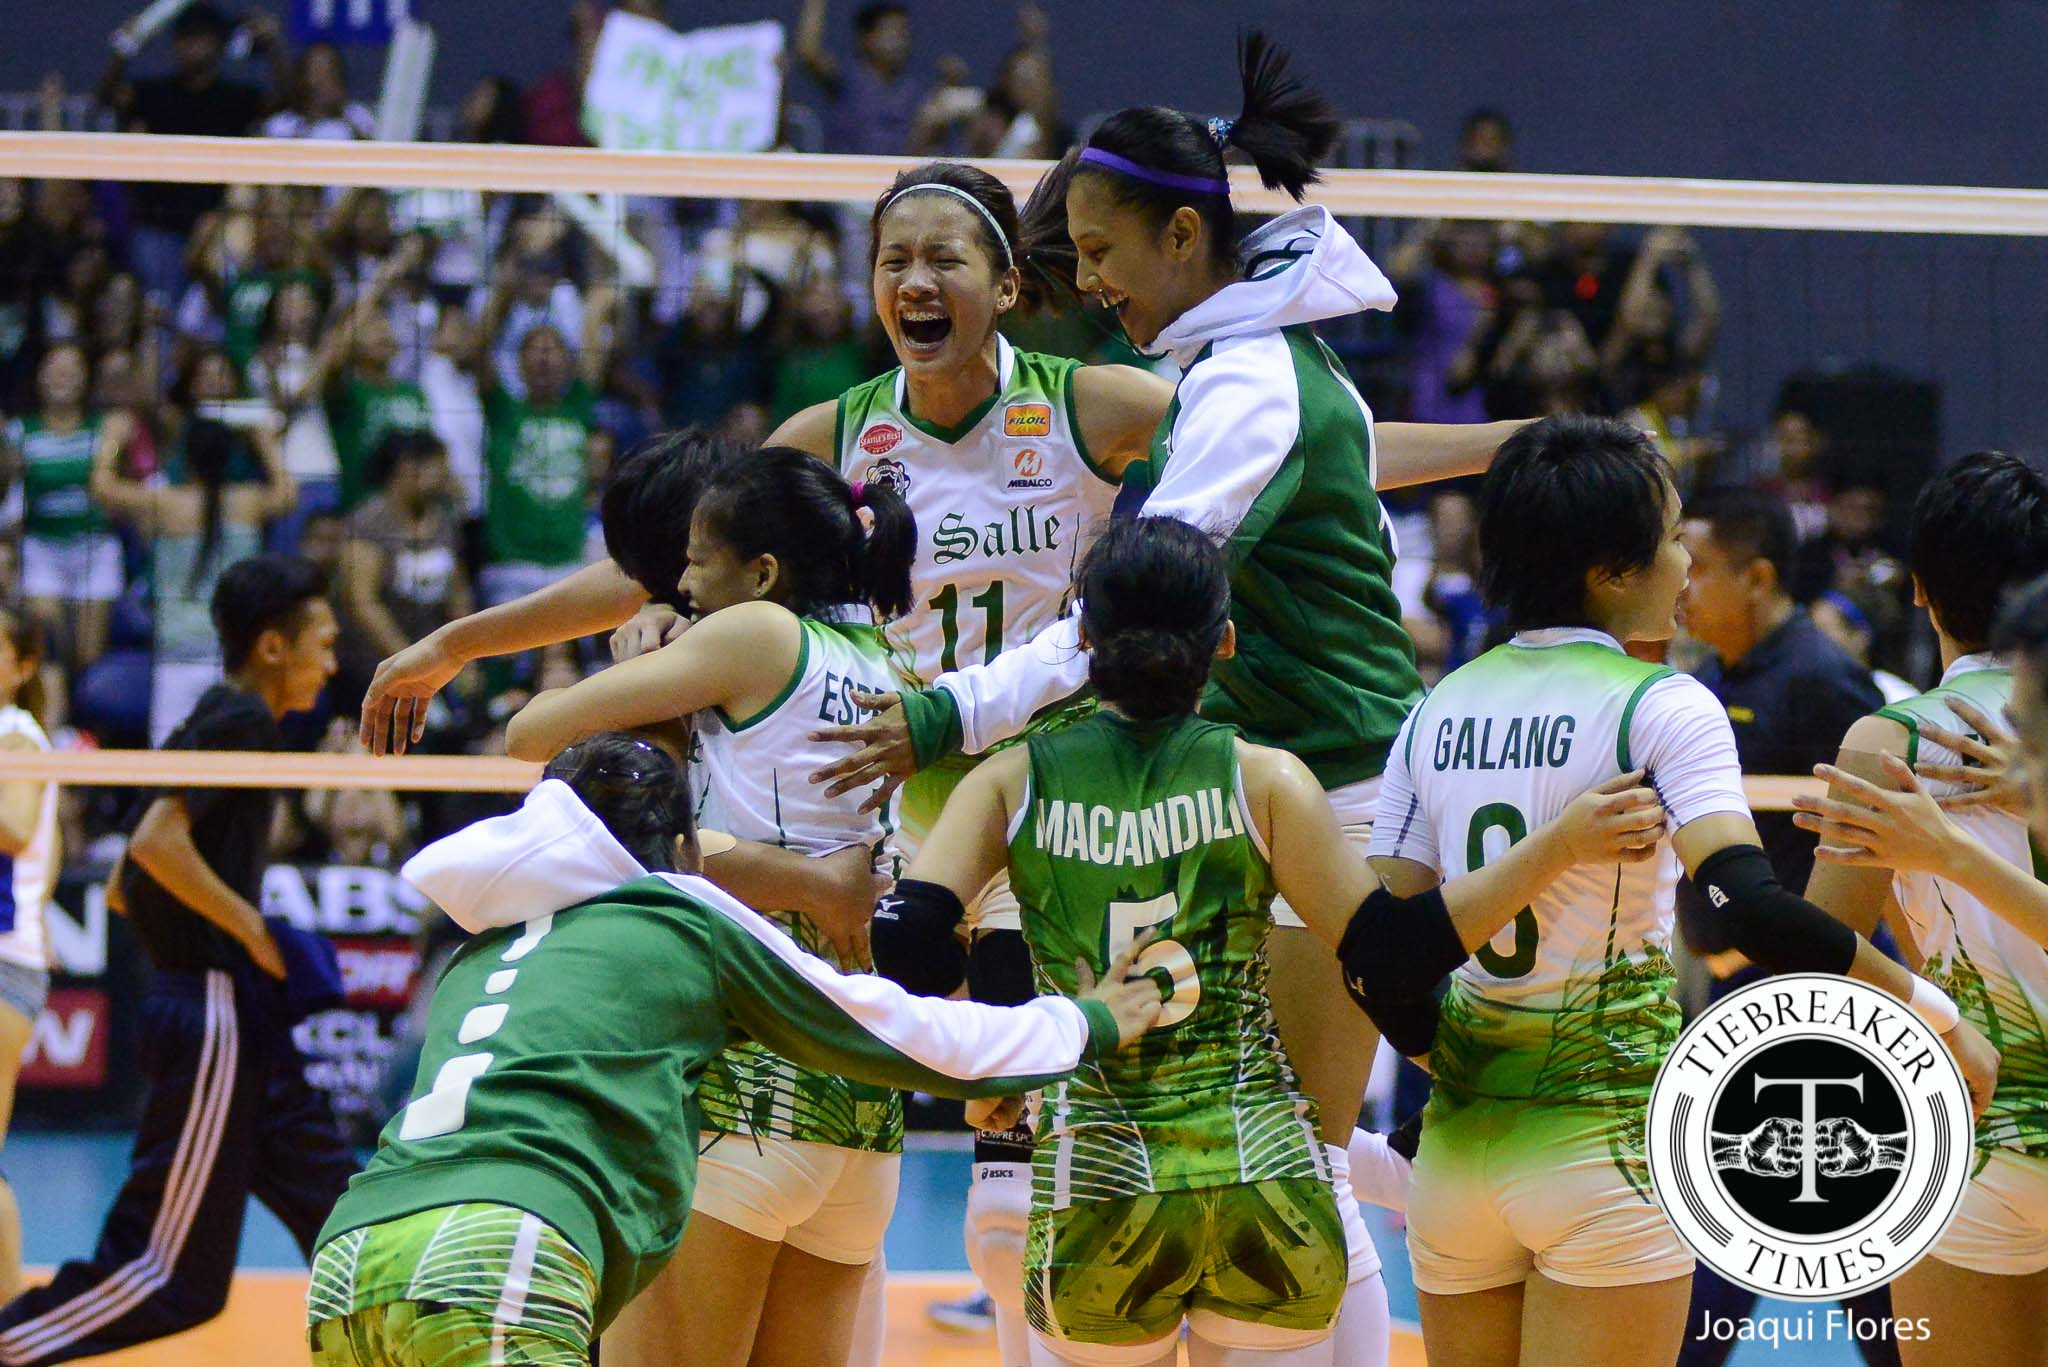 Tiebreaker Times Agony avenged as Lady Spikers dominate Lady Eagles ADMU DLSU News UAAP Volleyball  UAAP Season 78 Women's Volleyball UAAP Season 78 Mika Reyes Kim Fajardo Jia Morado Jho Maraguinot DLSU Women's Volleyball Ateneo Women's Volleyball Ara Galang Alyssa Valdez